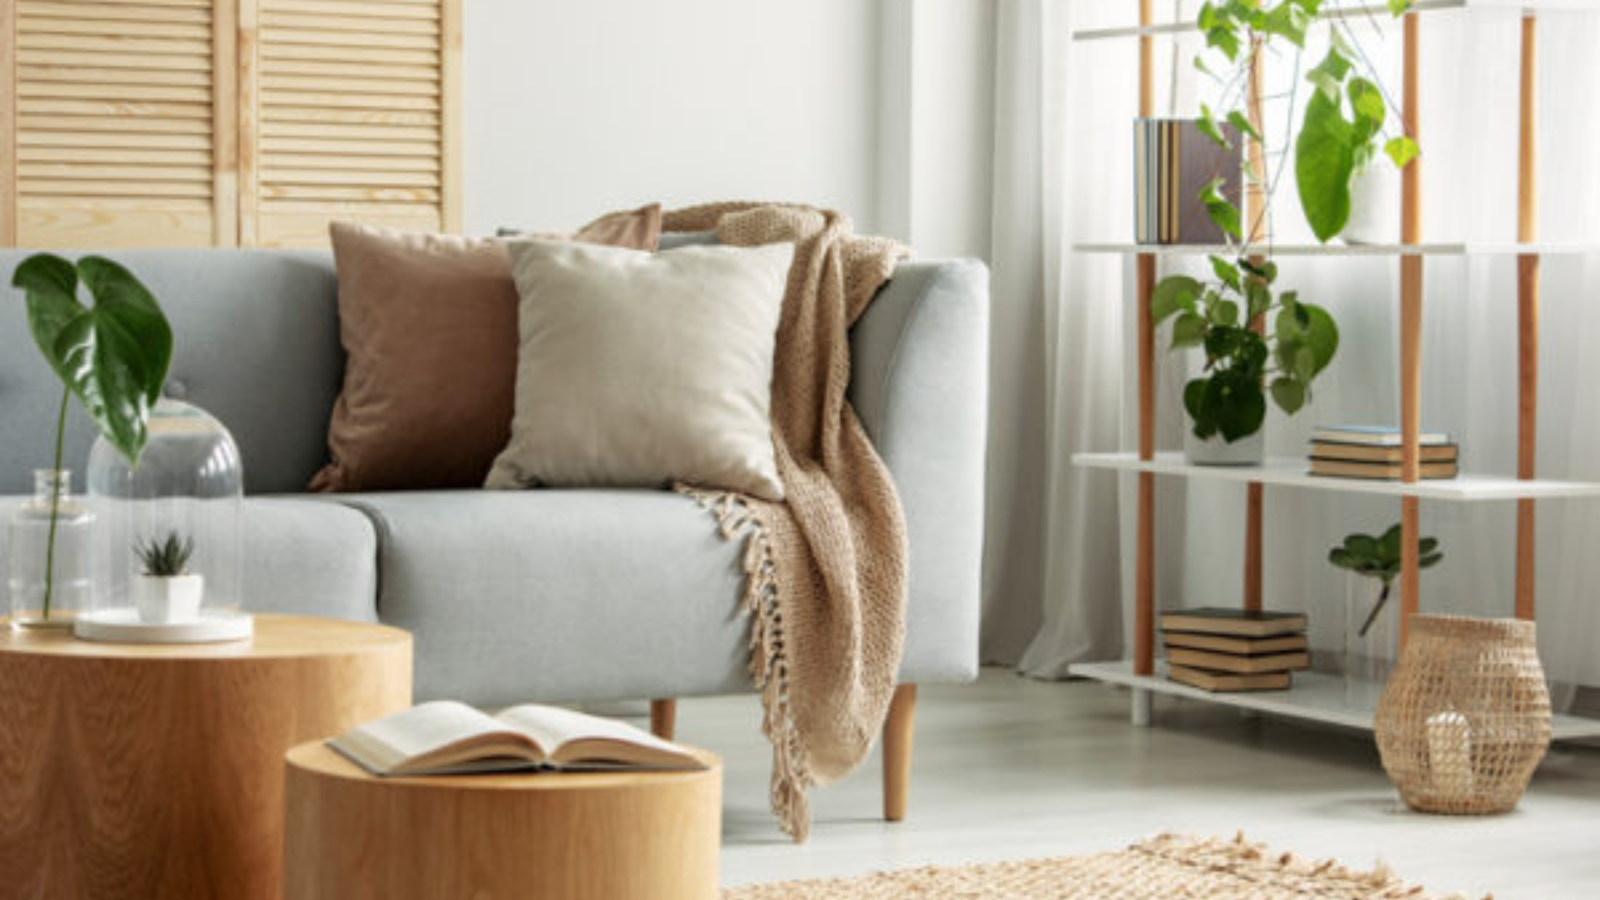 Home Design Trends for Fall and Winter - Featured 2